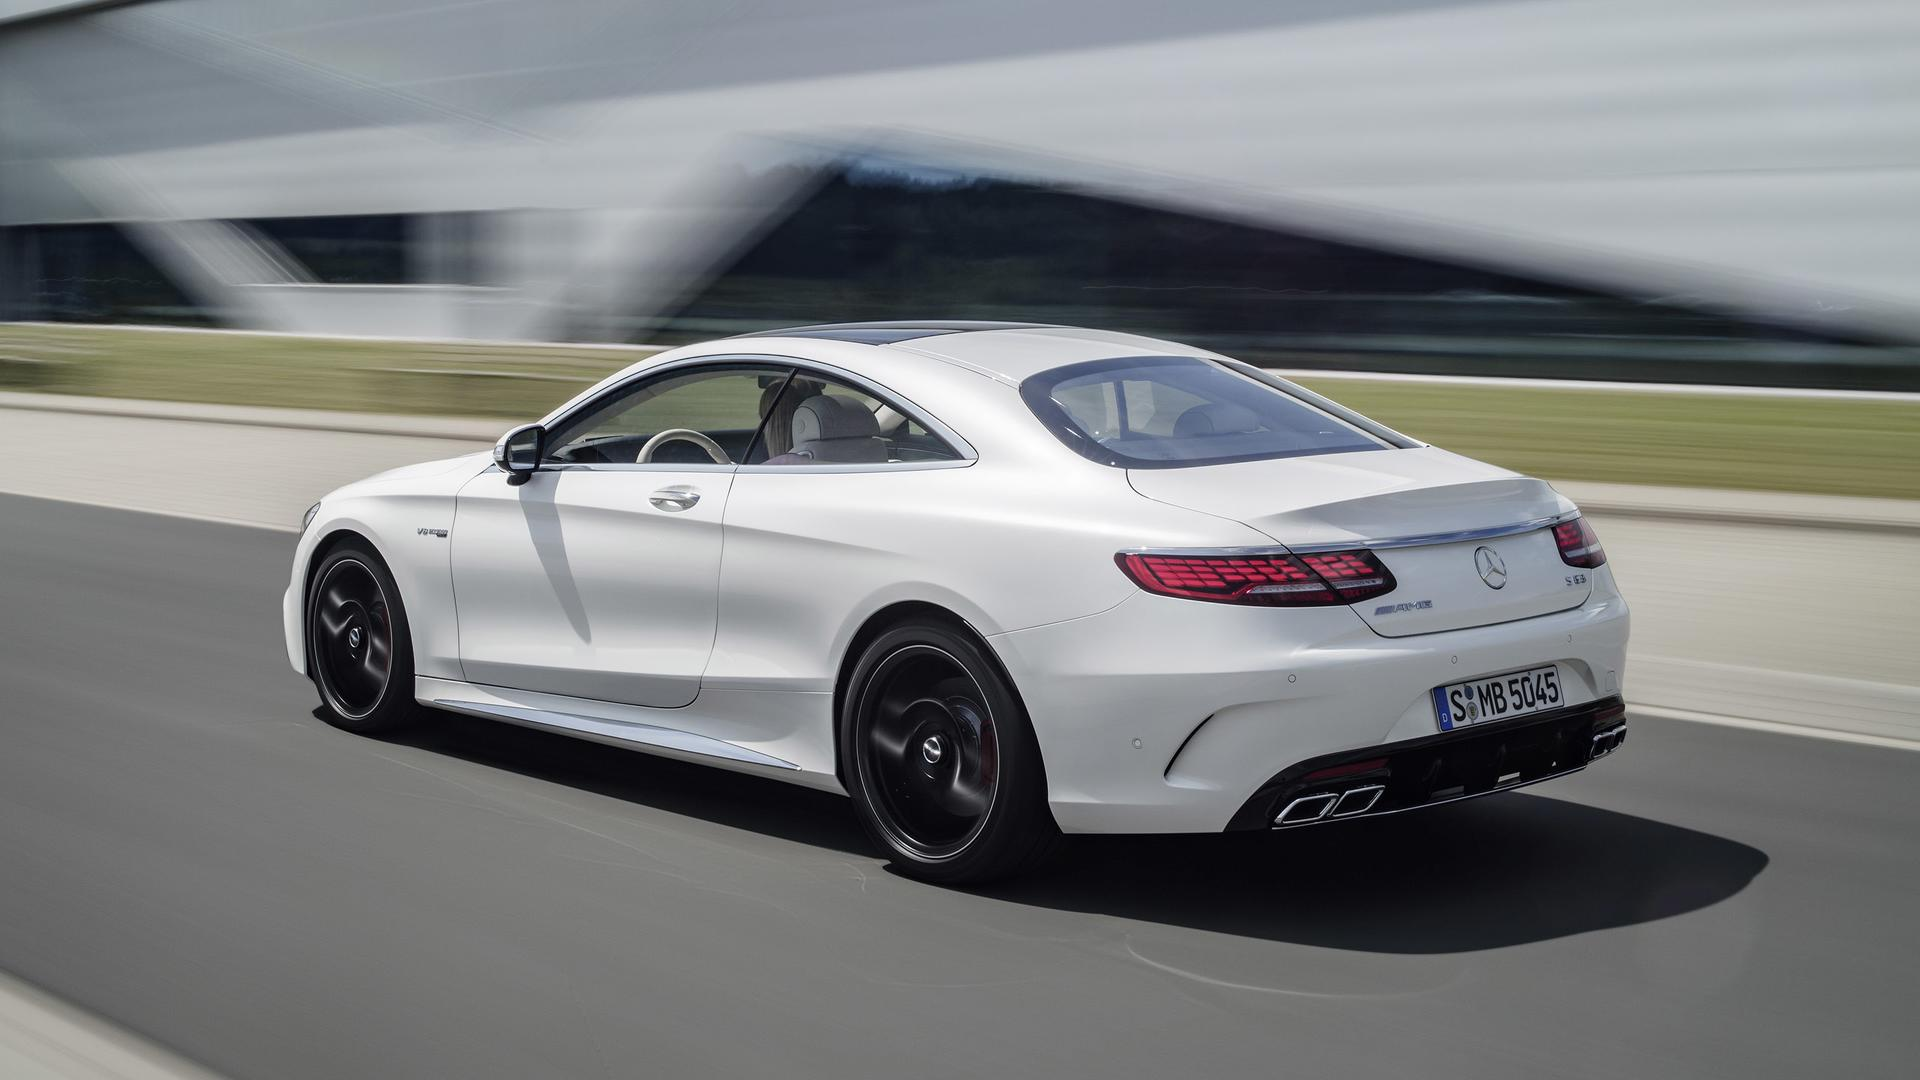 2018 s63 amg coupe 0 60 future cars release date for Mercedes benz socks